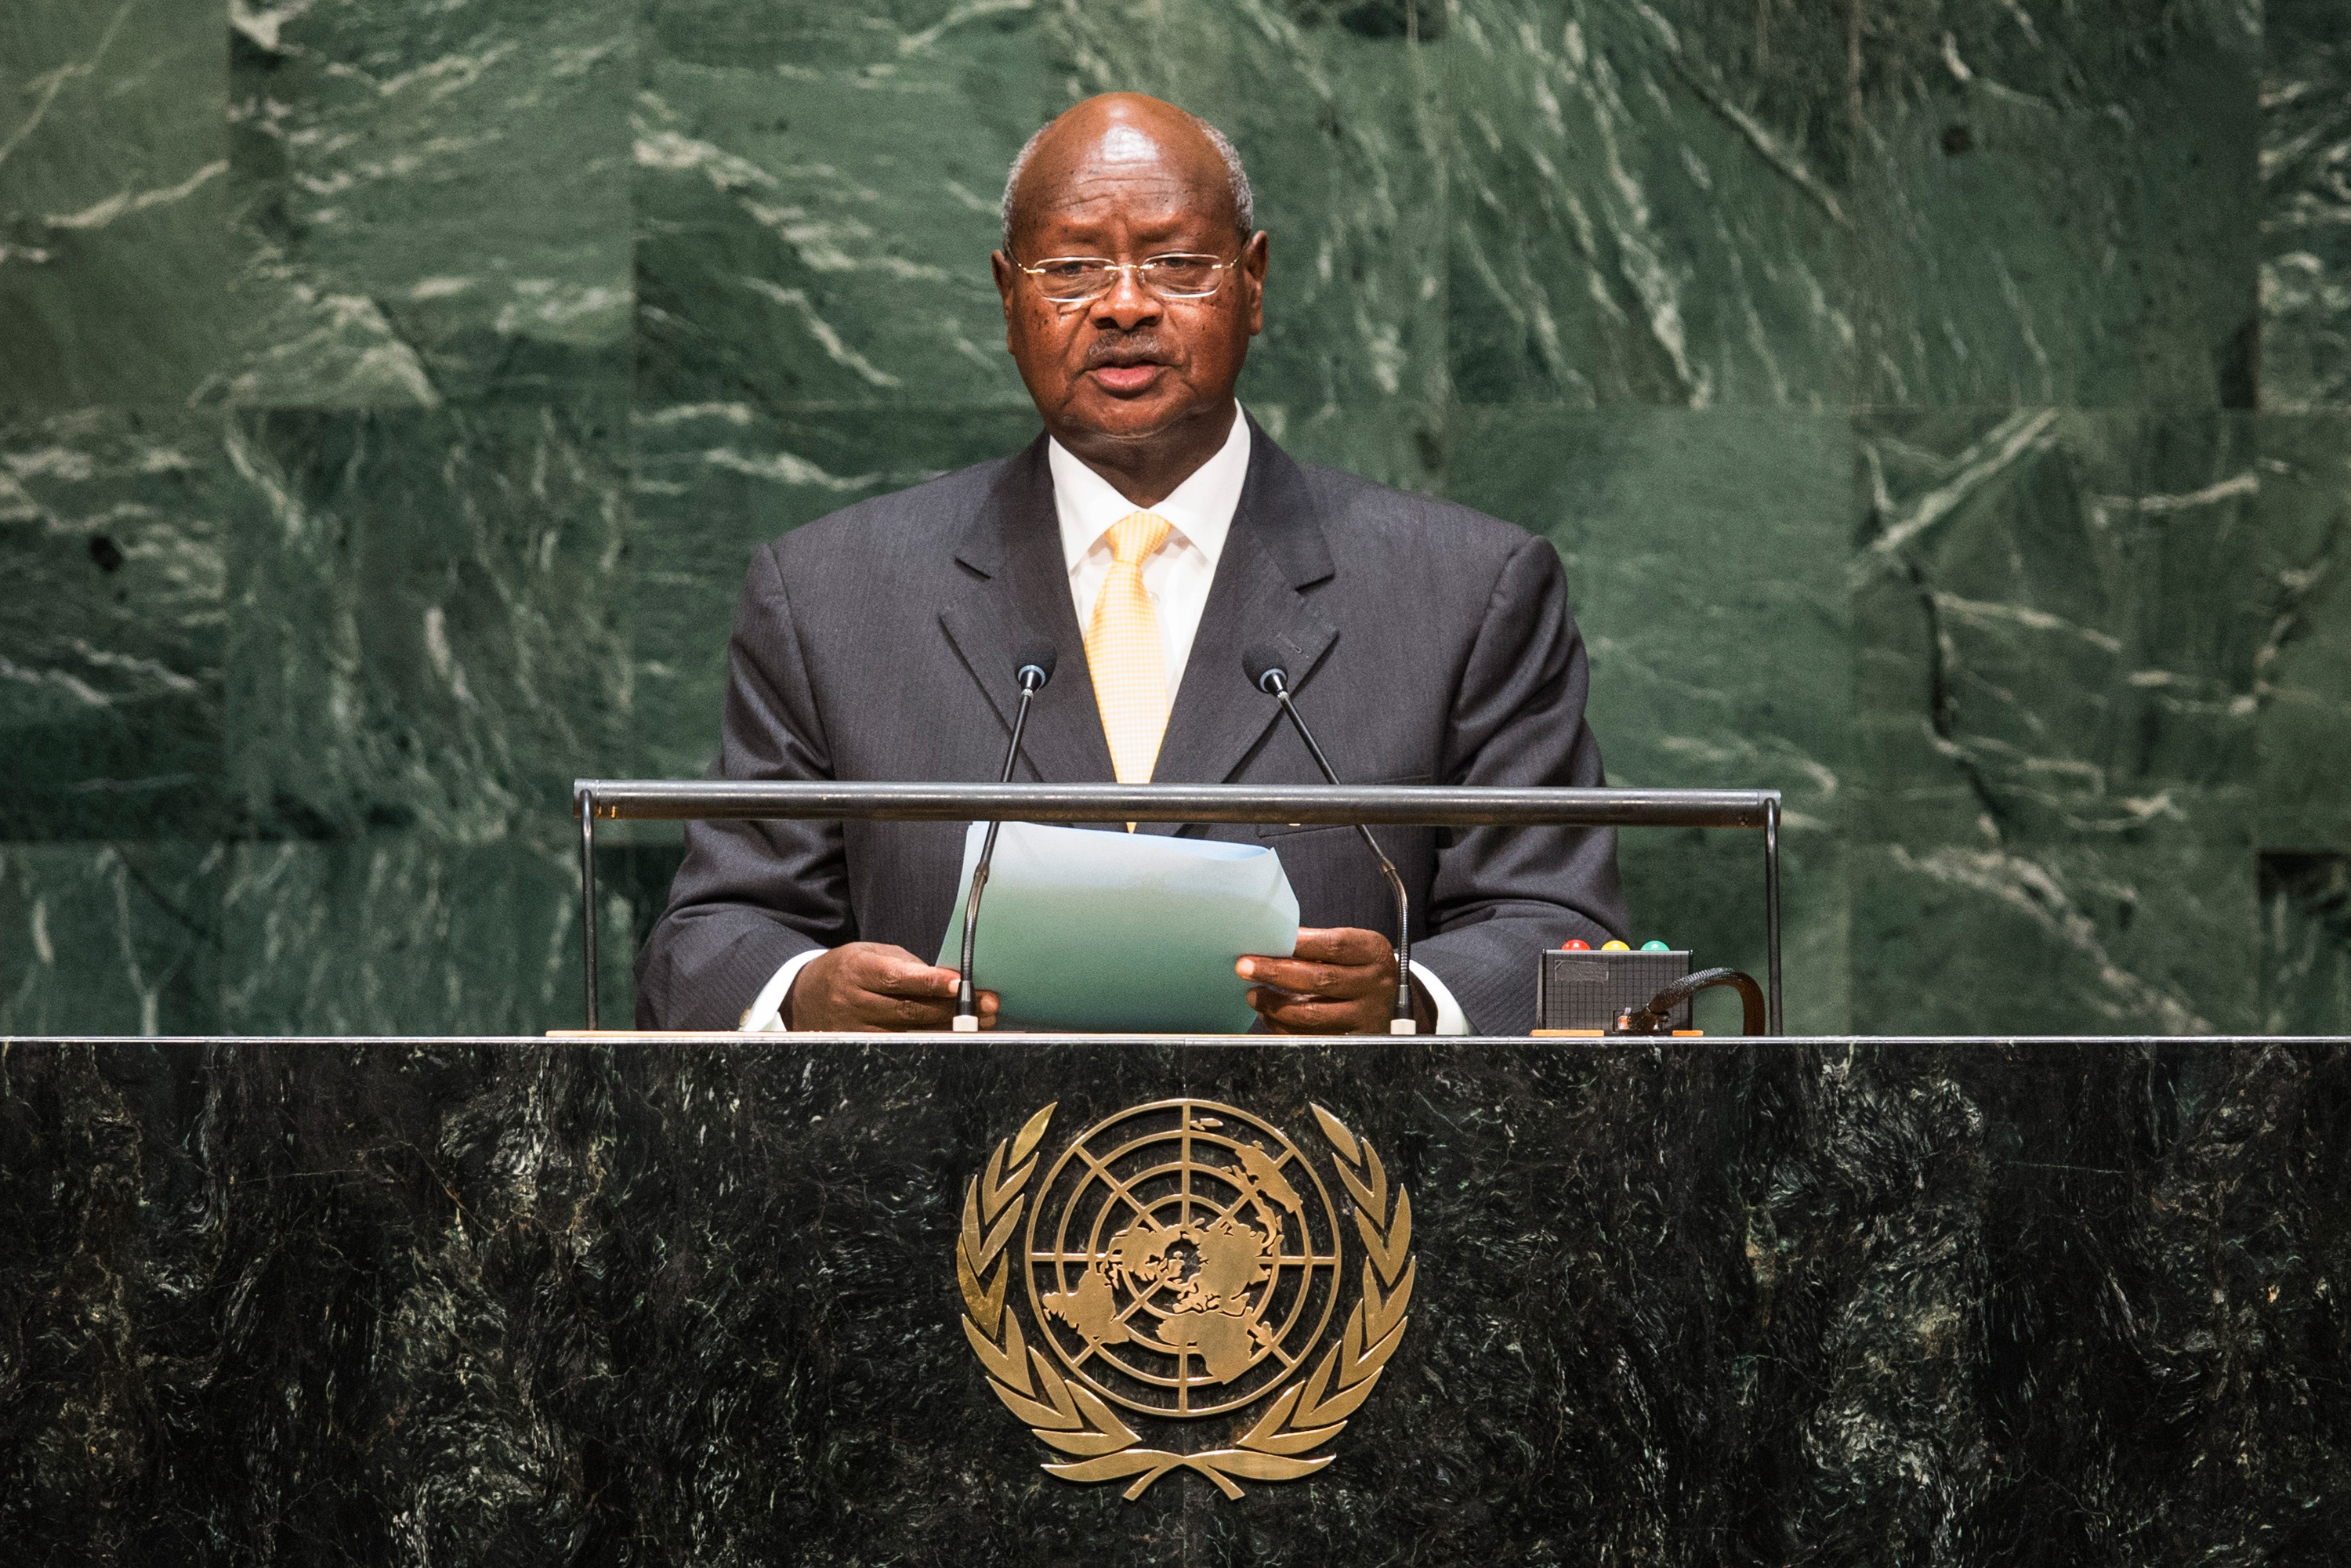 Uganda government used advanced spyware to 'crush' opposition, report says